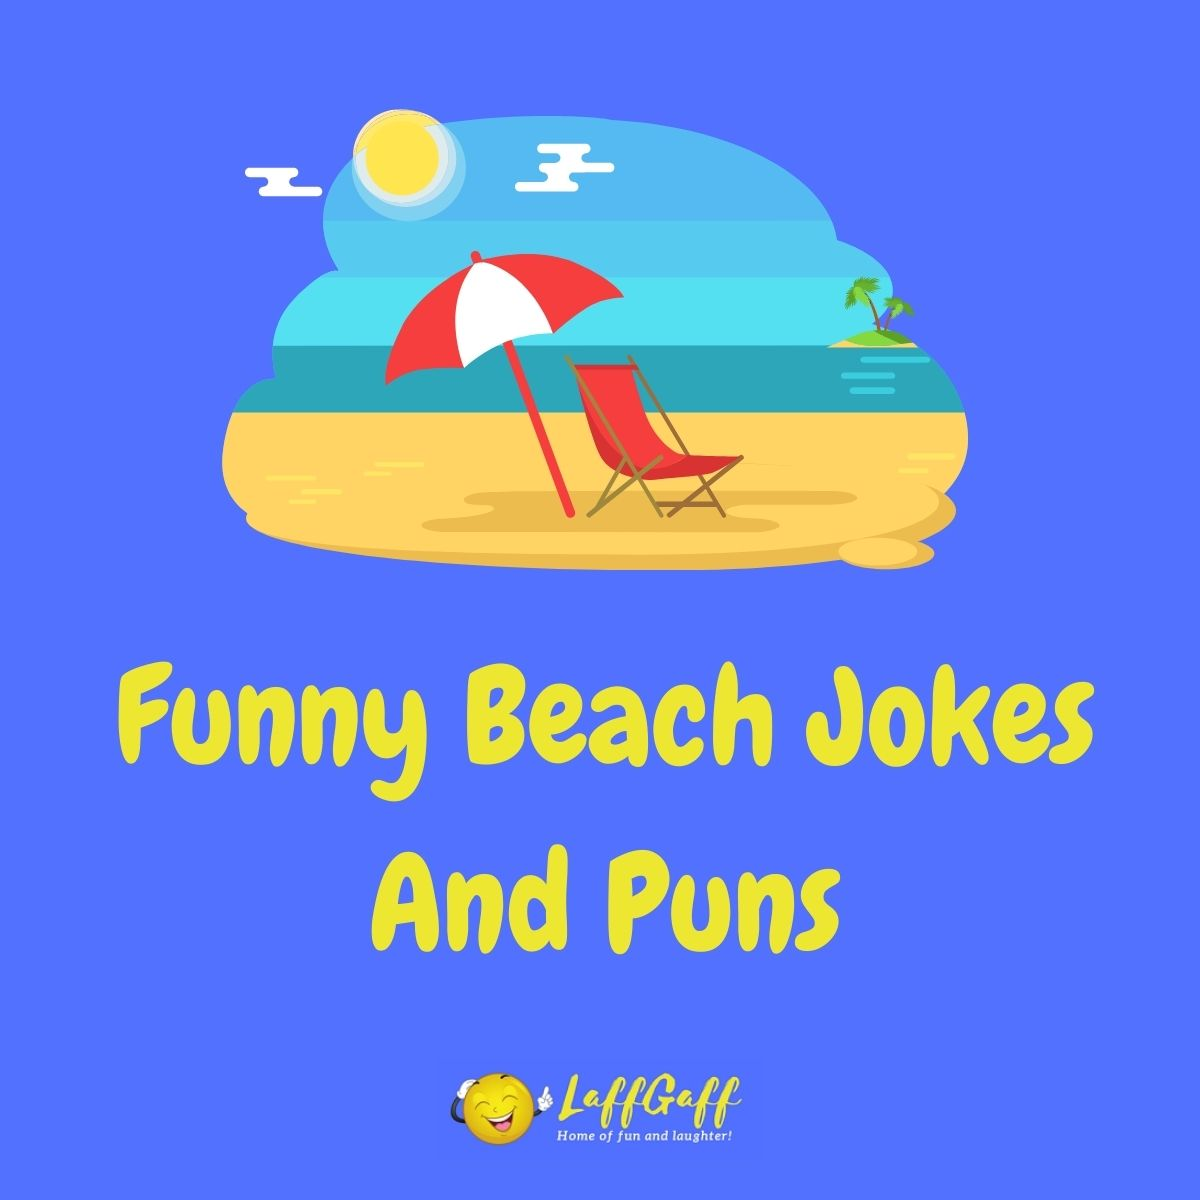 Featured image for a page of funny beach jokes and puns.